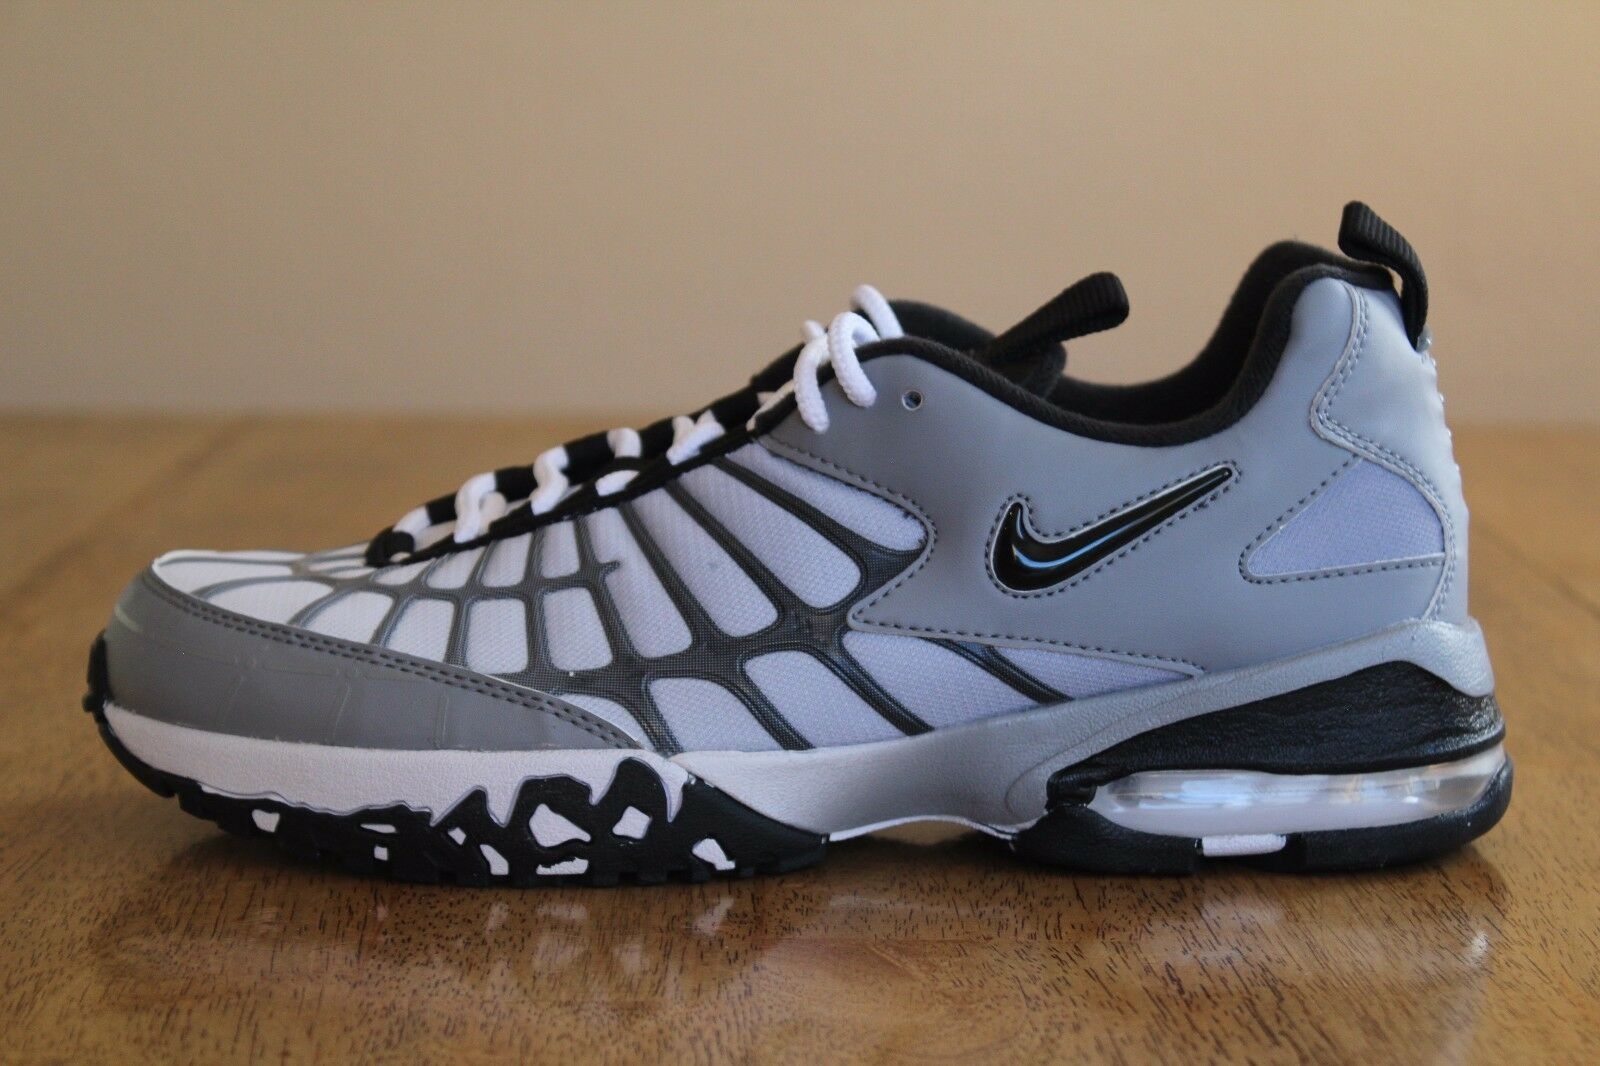 18 New Mens Nike Air Max 120 Running Shoes Stealth/Black-White 819857-002 8.5